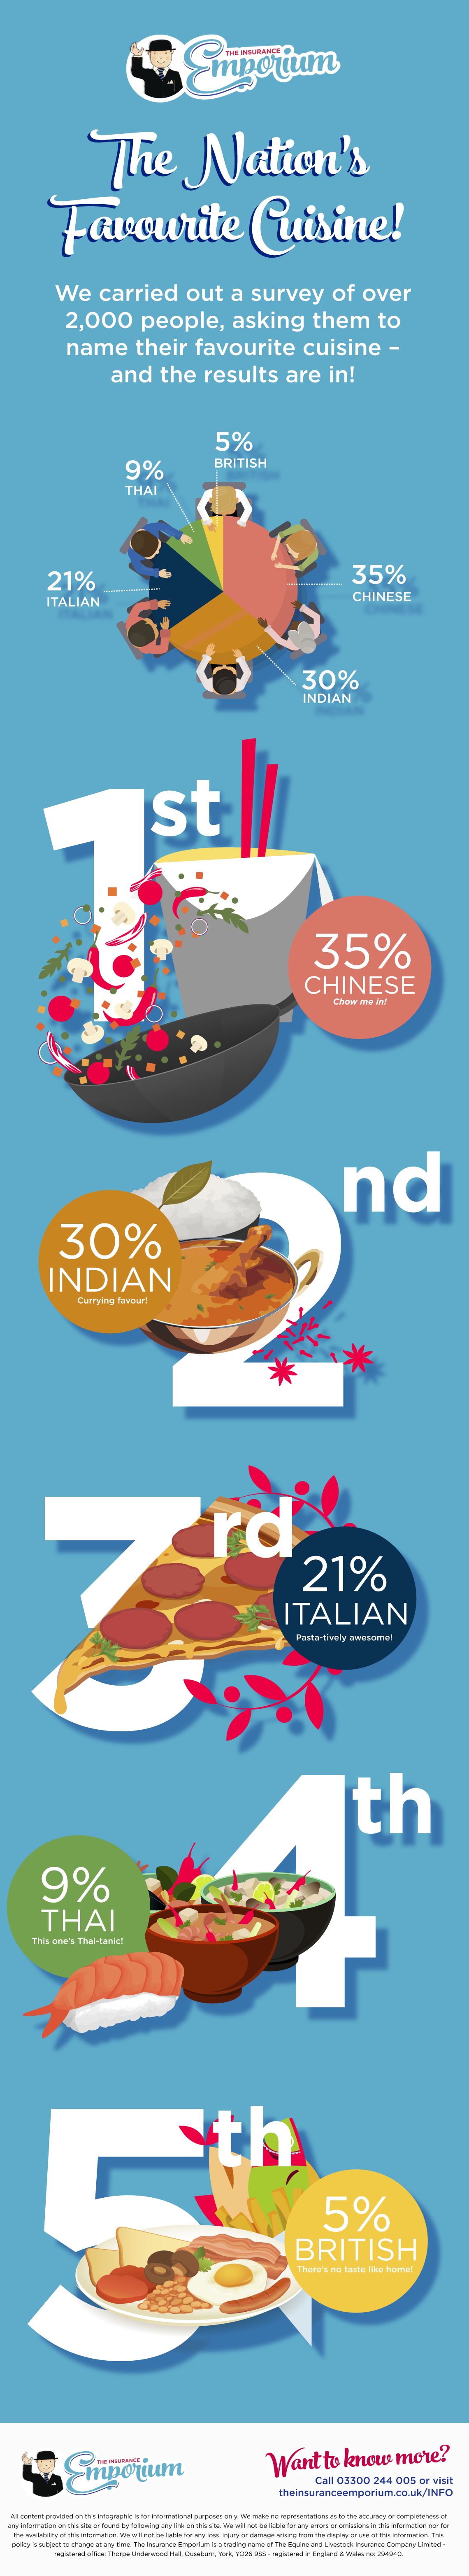 The Nation's Favourite Cuisine Infographic